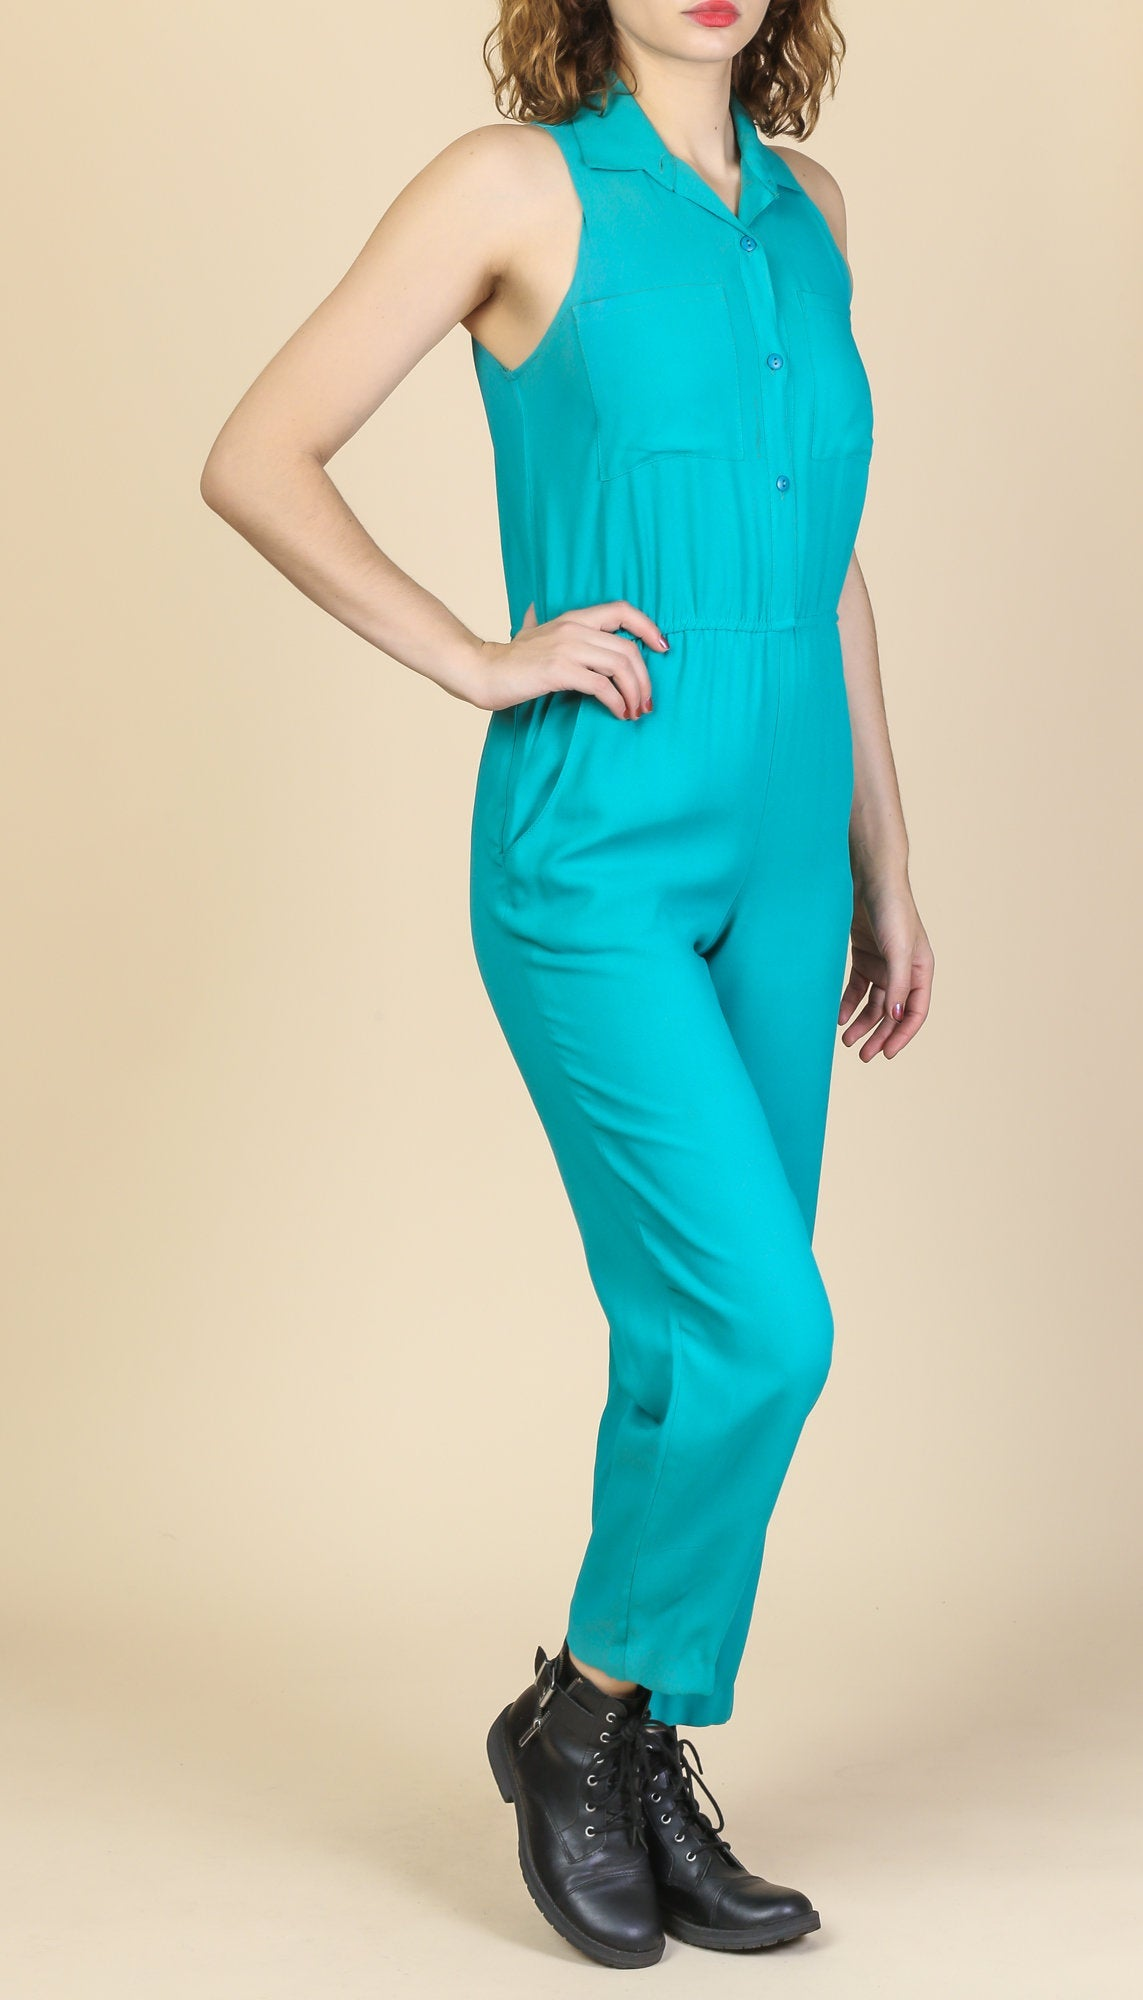 80s Teal Blue Jumpsuit - Small to Medium, Petite